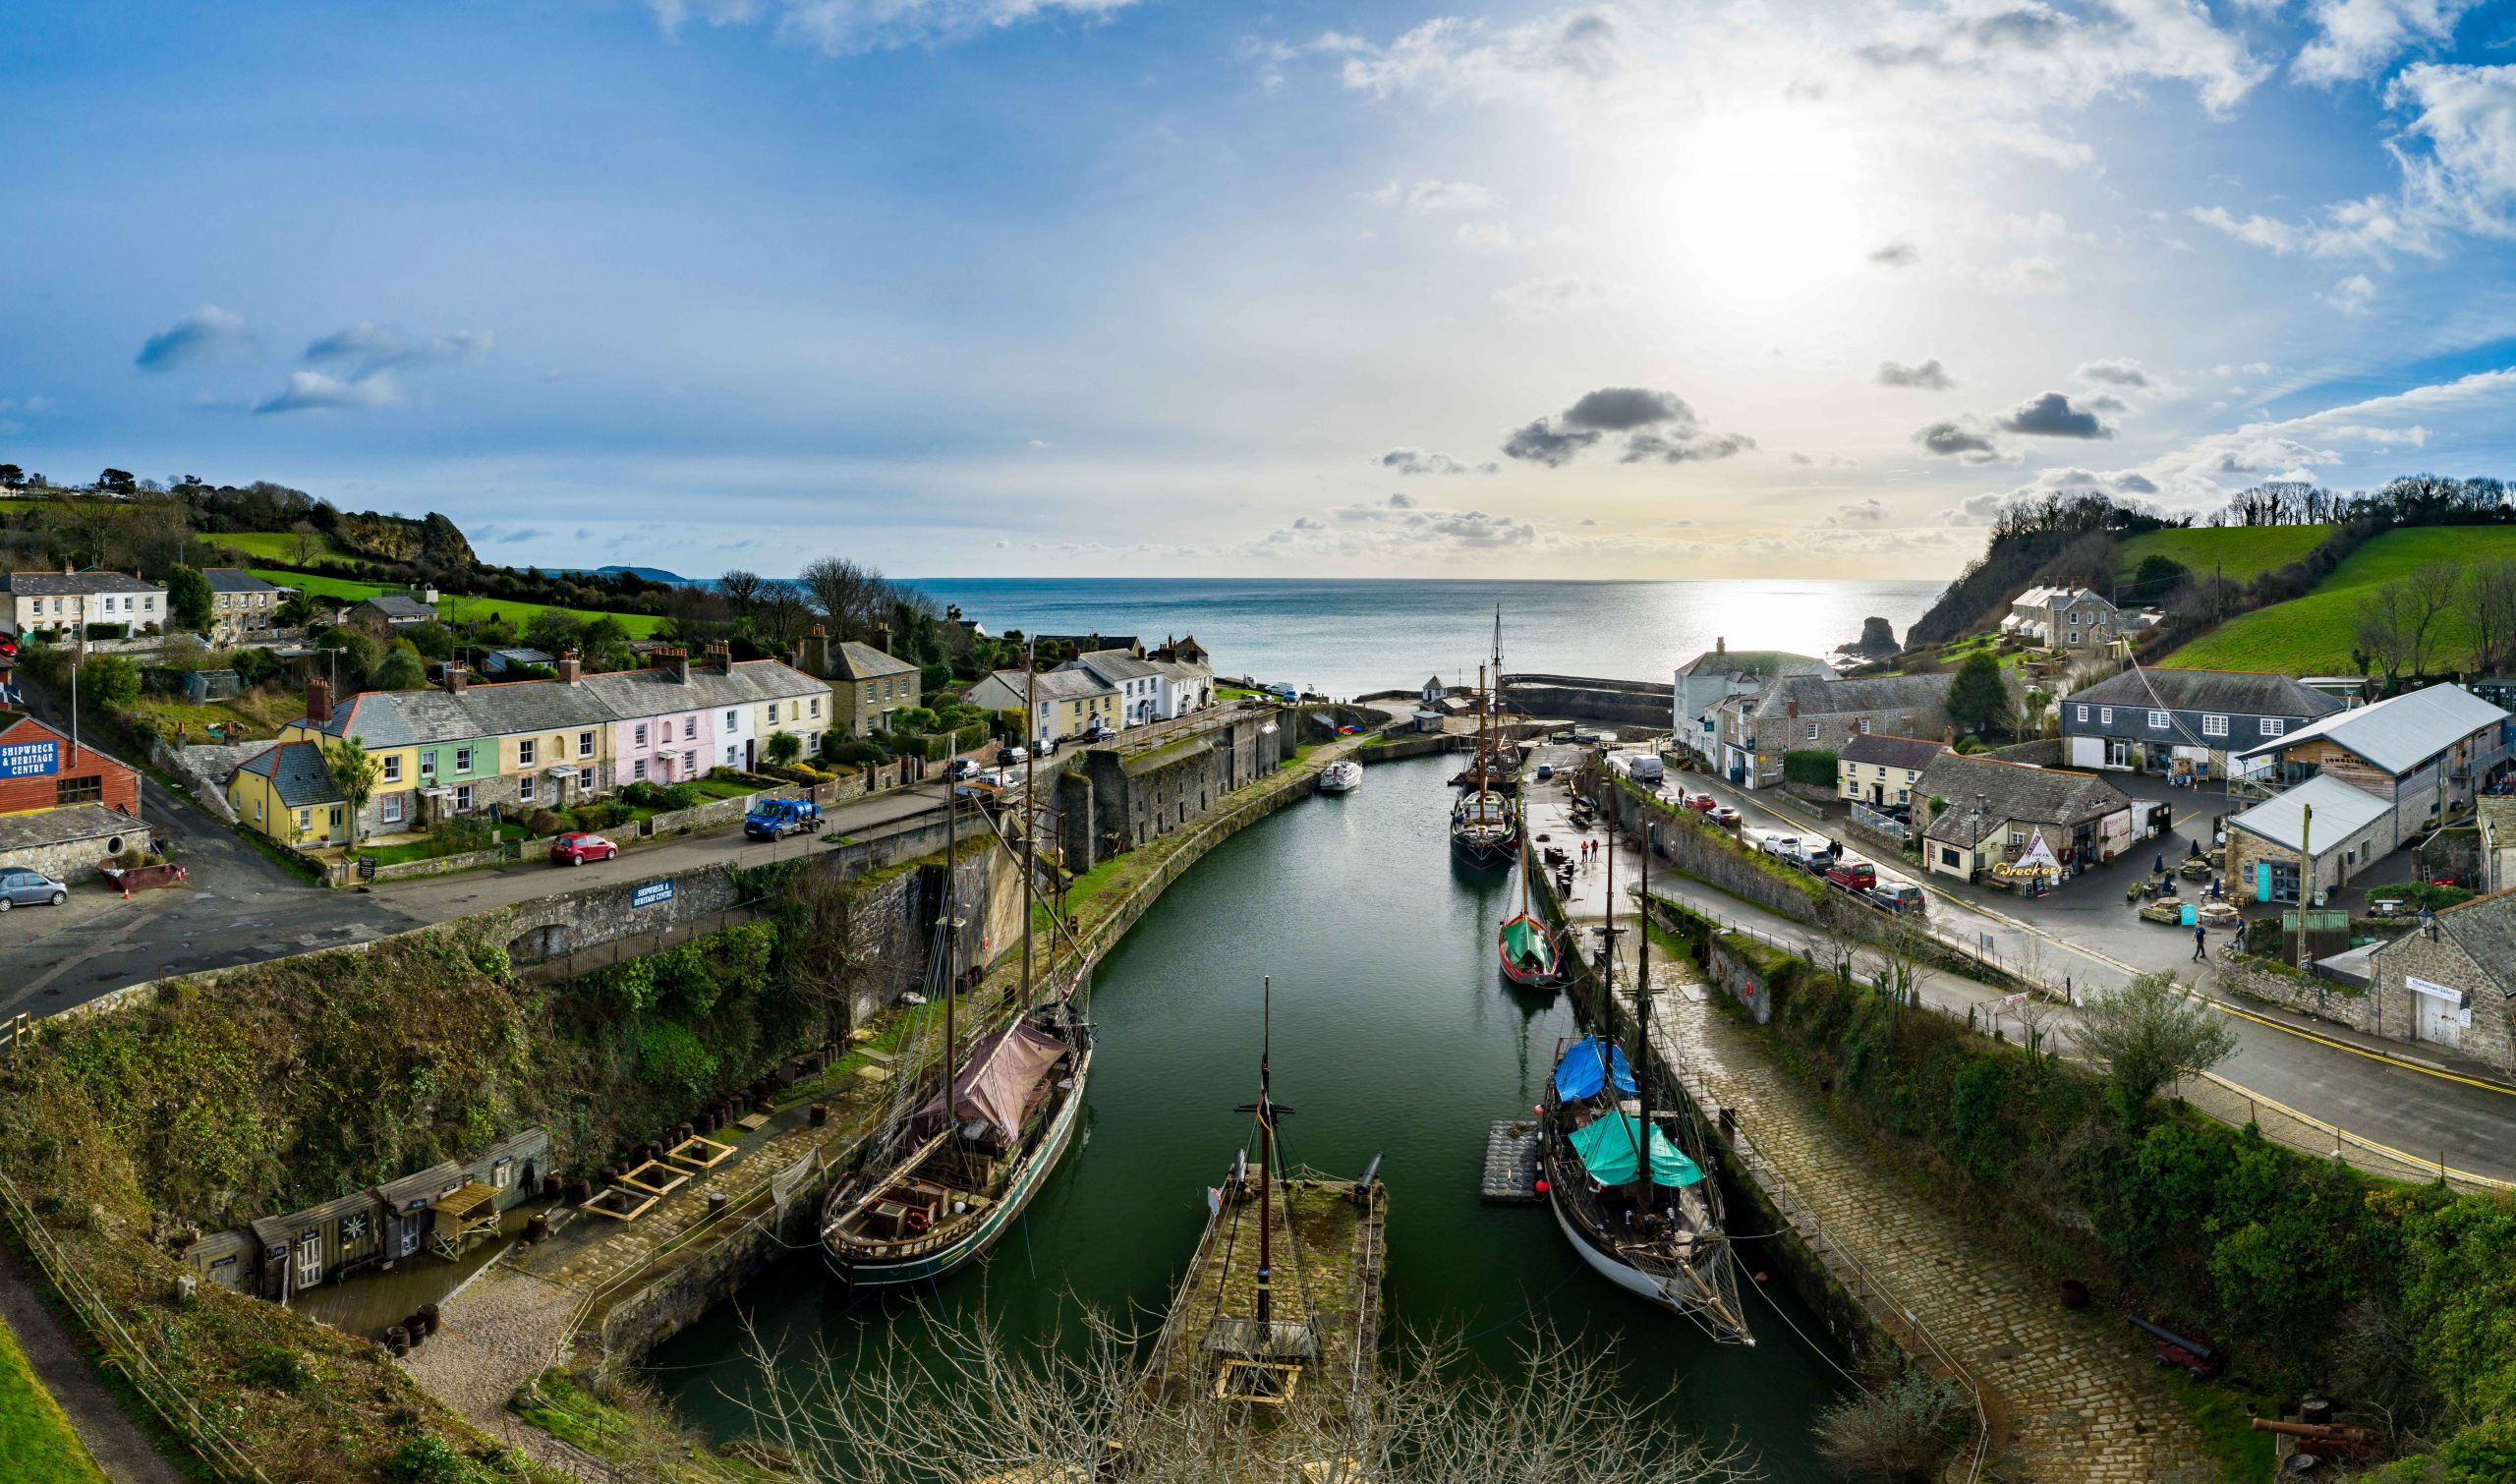 An image of the Charlestown harbour